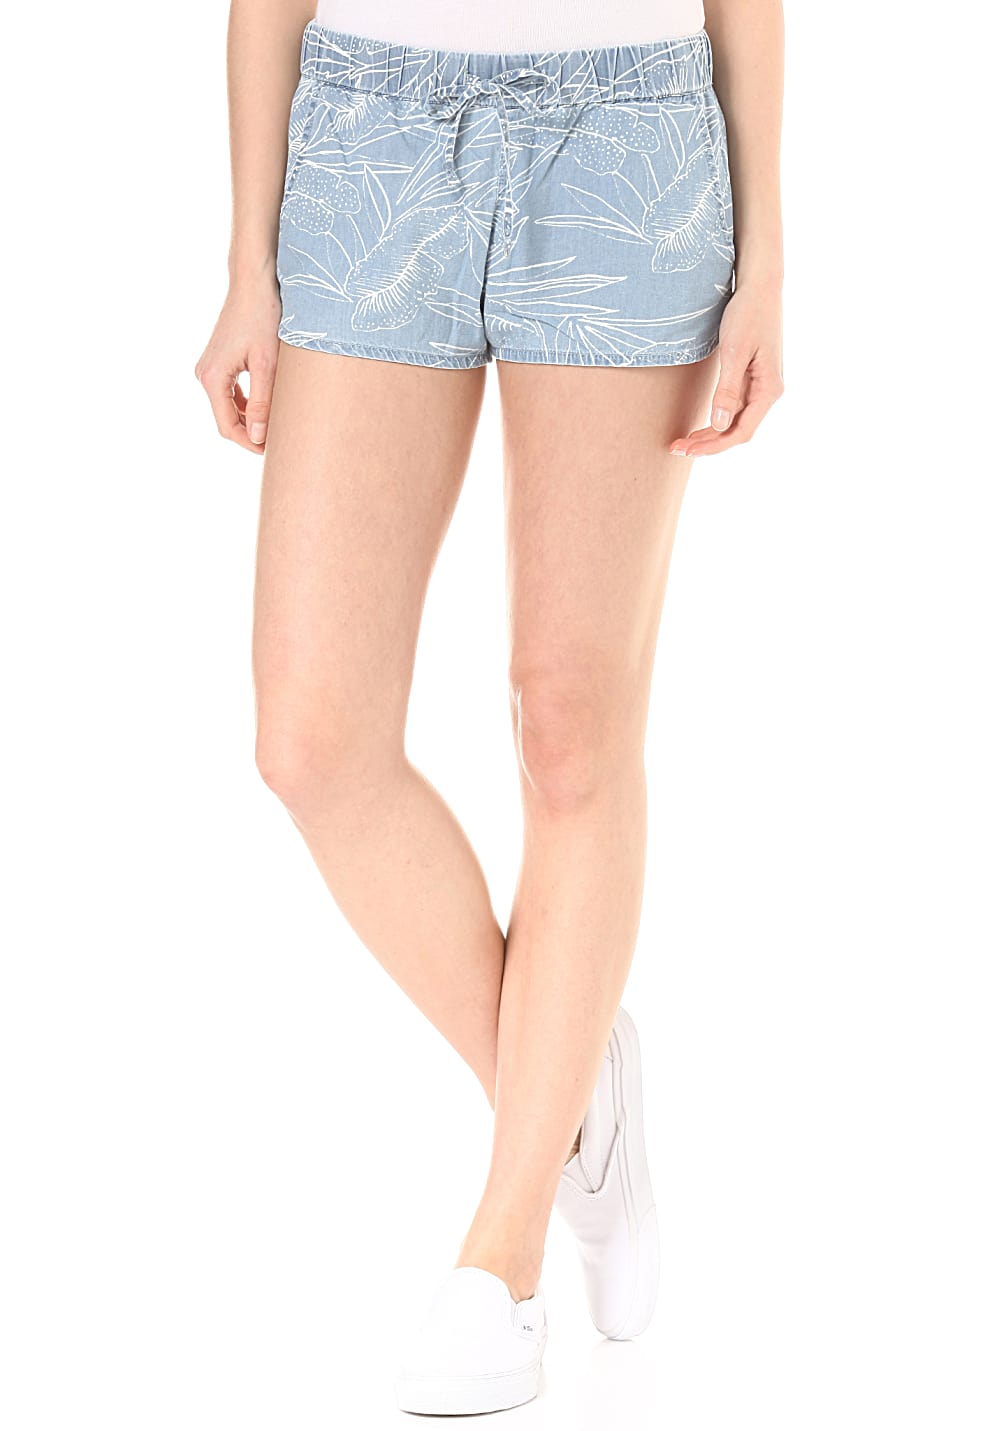 Hosen für Frauen - Vans Janek II Denim Shorts für Damen Blau  - Onlineshop Planet Sports